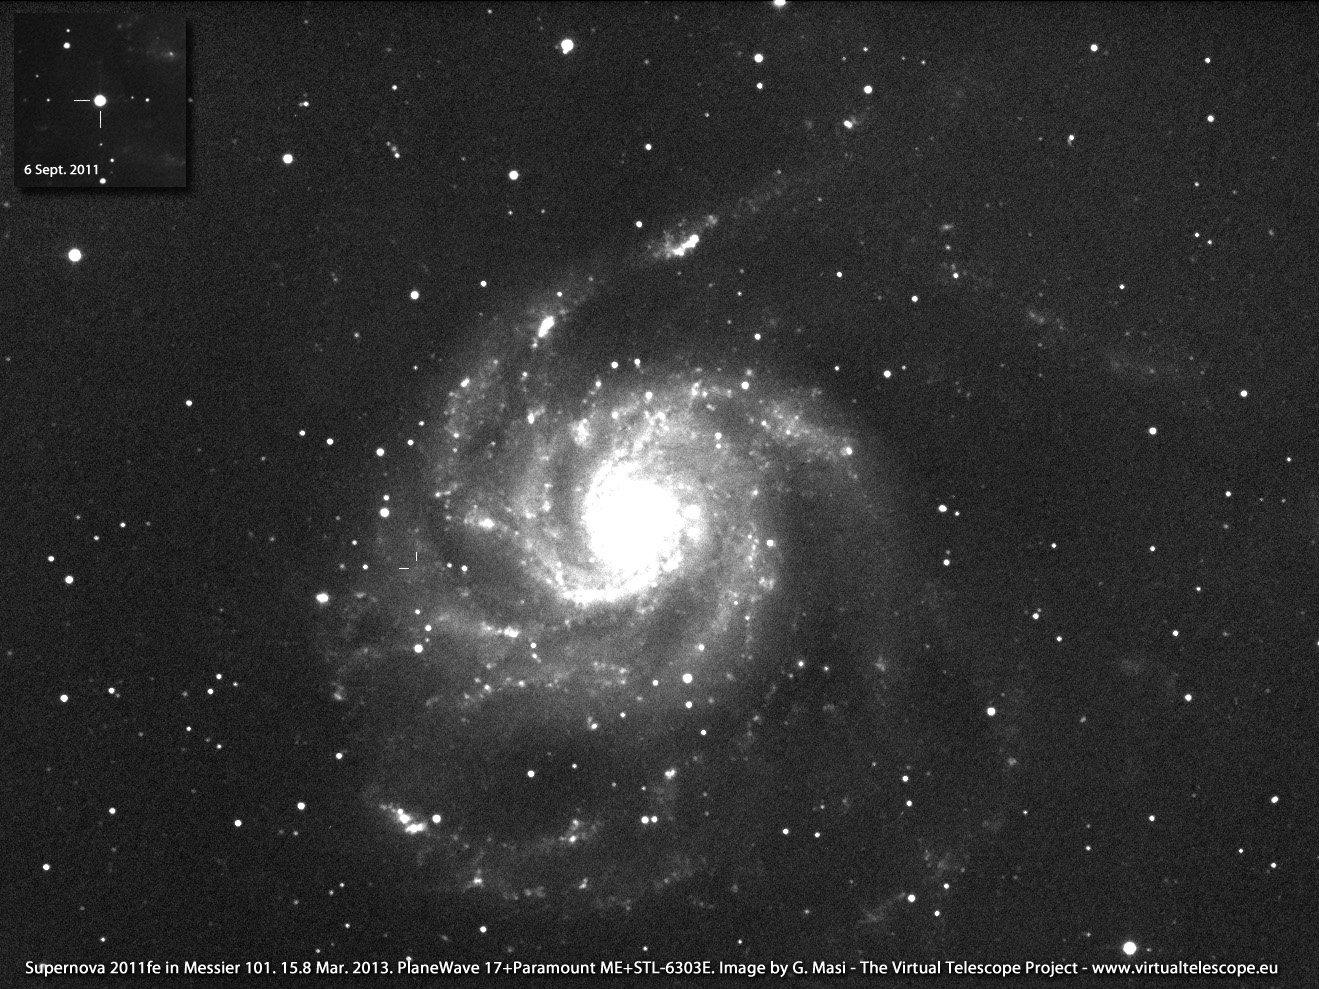 M101 and SN 2011fe, 15 Mar. 2013